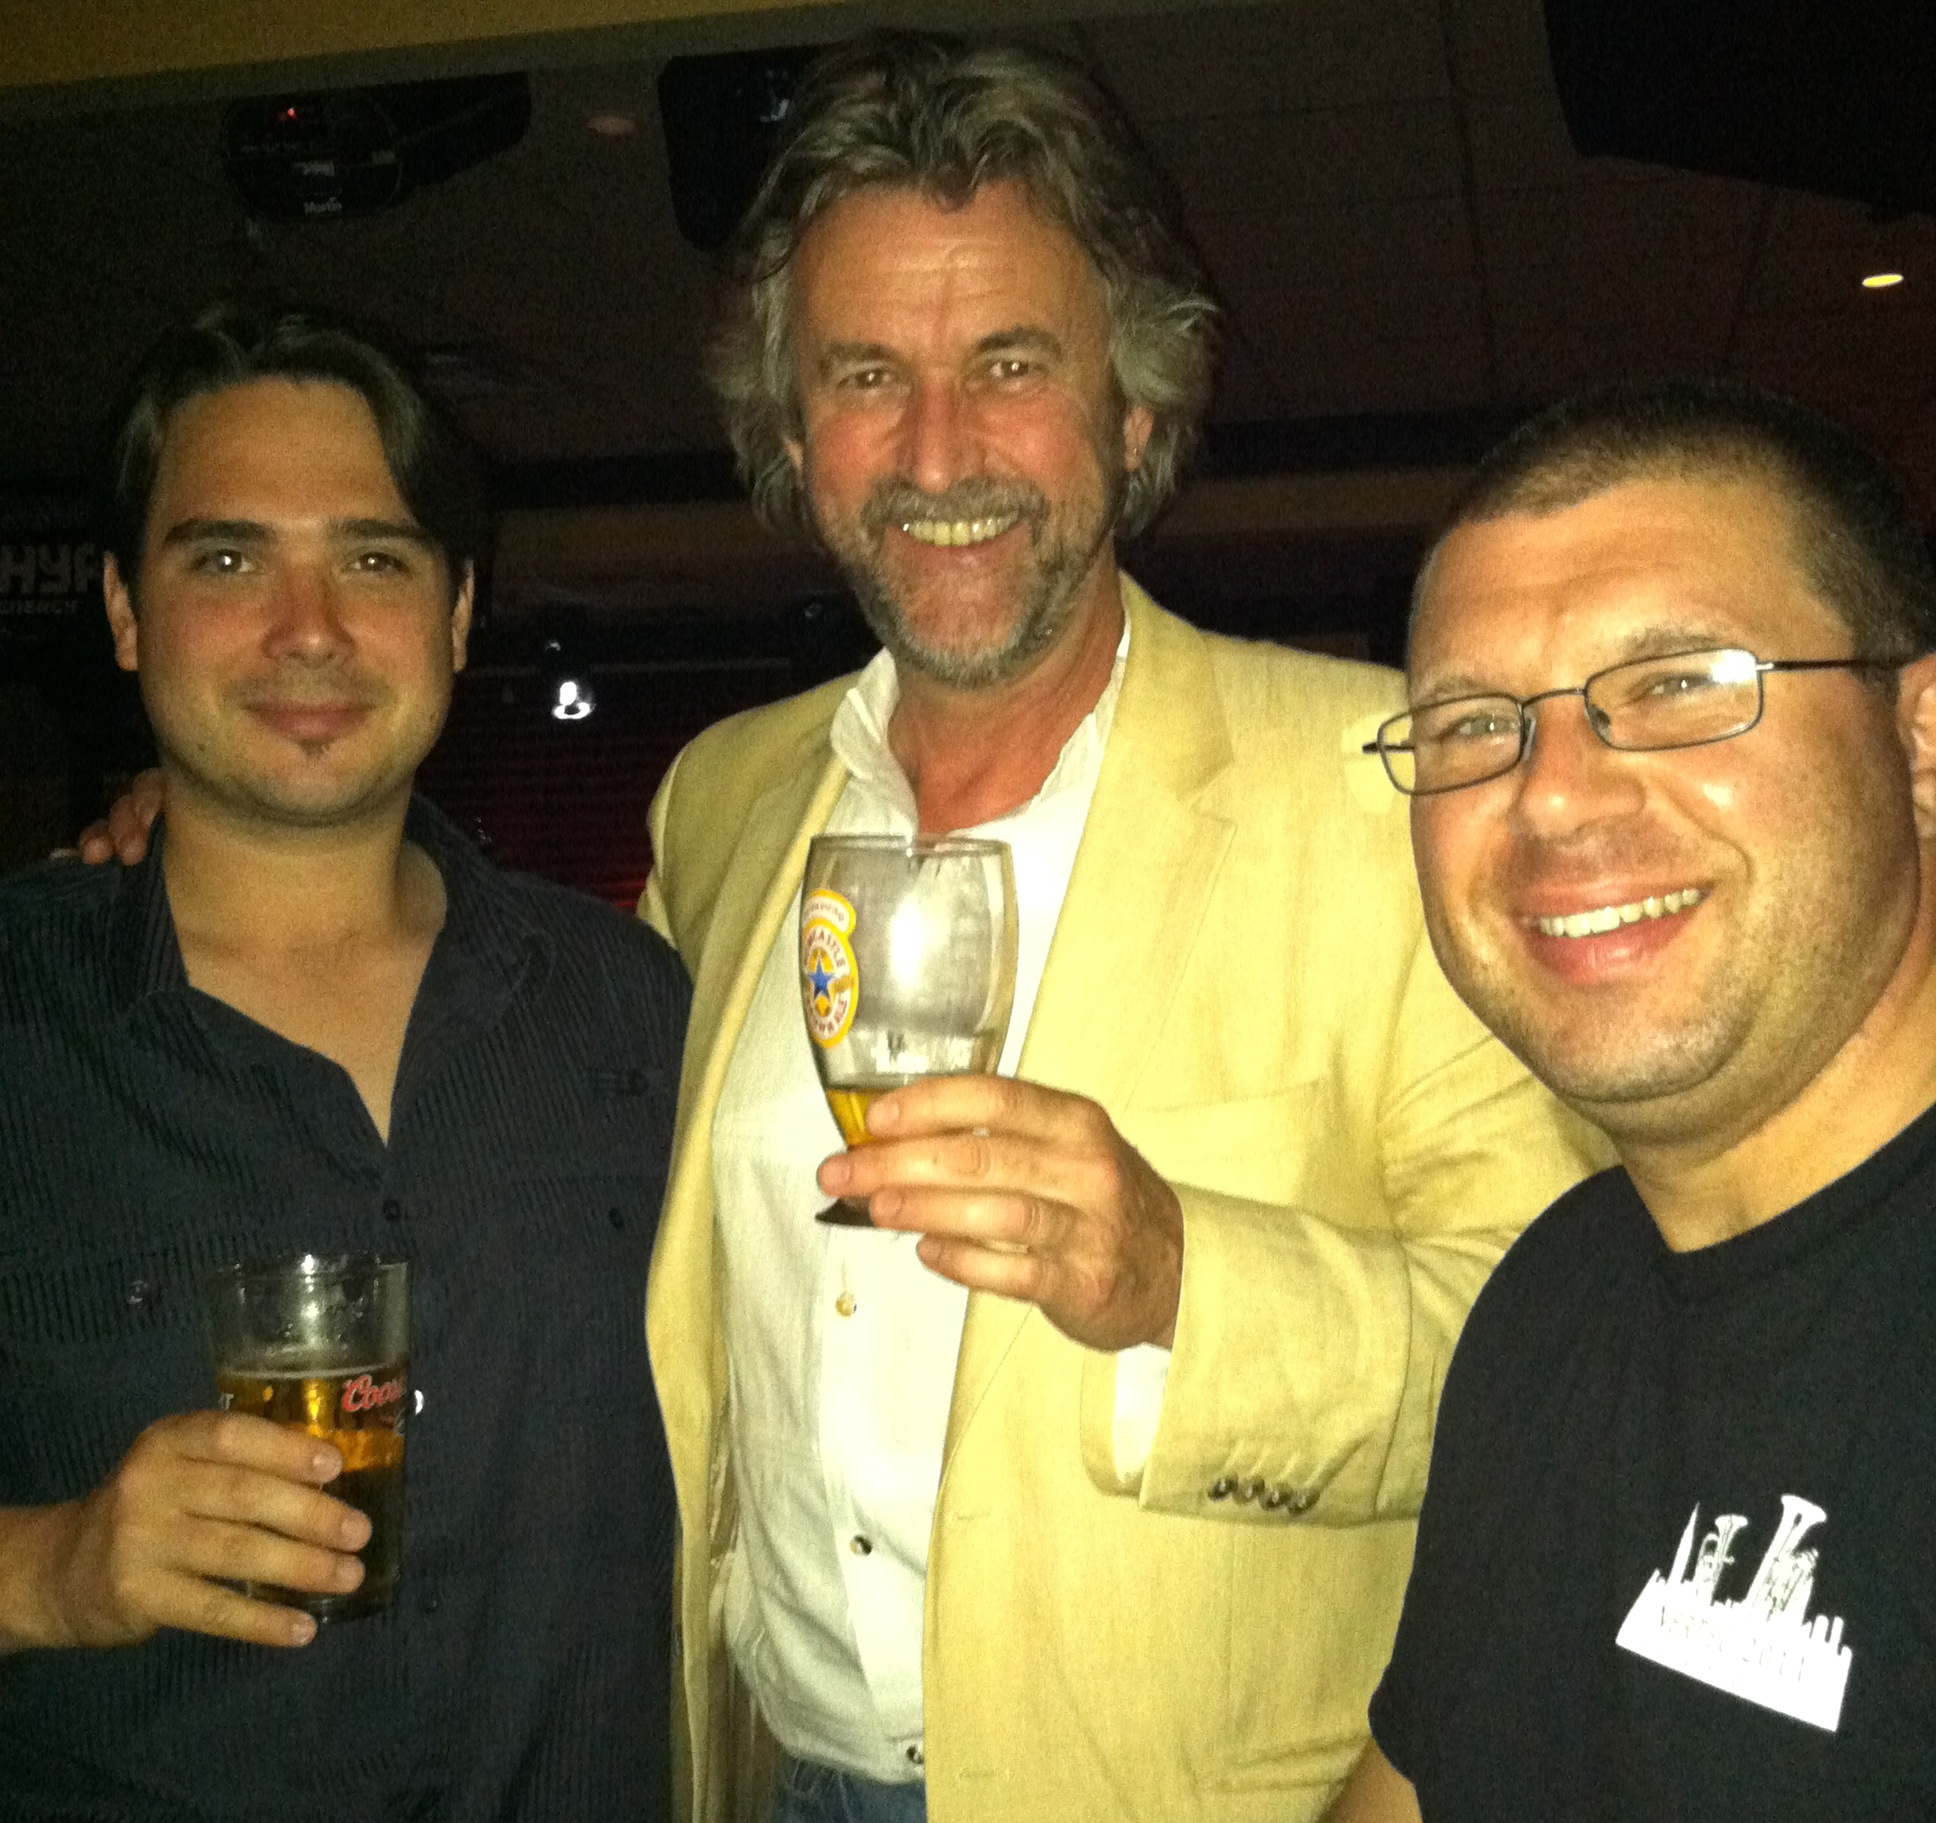 Having a toast with the two soloists, David Childs (left) and Jason Ham. May 2011